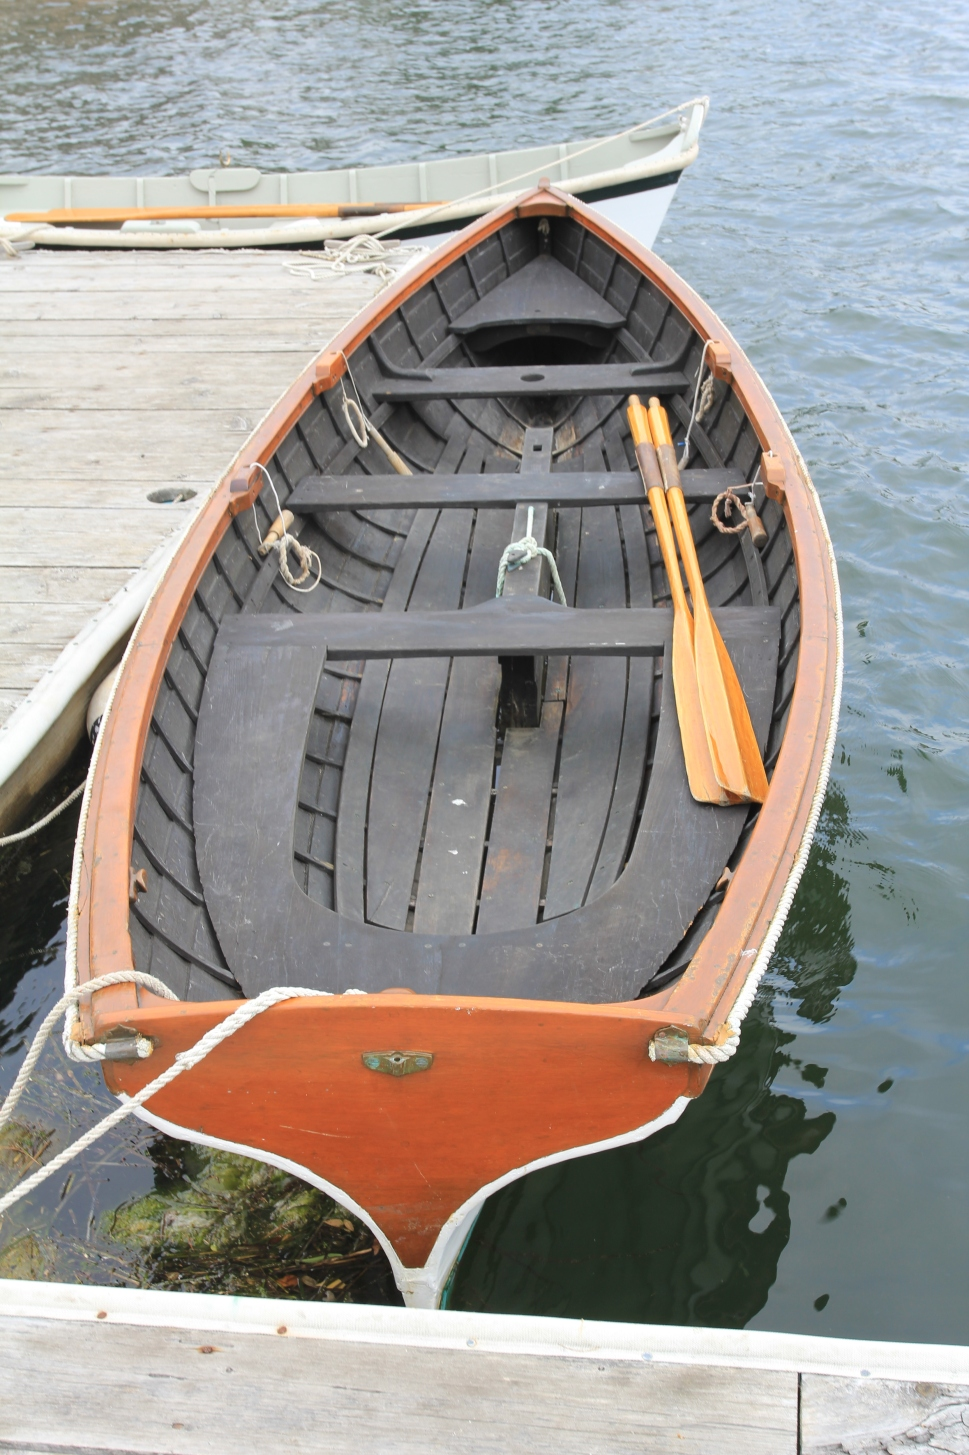 An example of the boathouse fleet